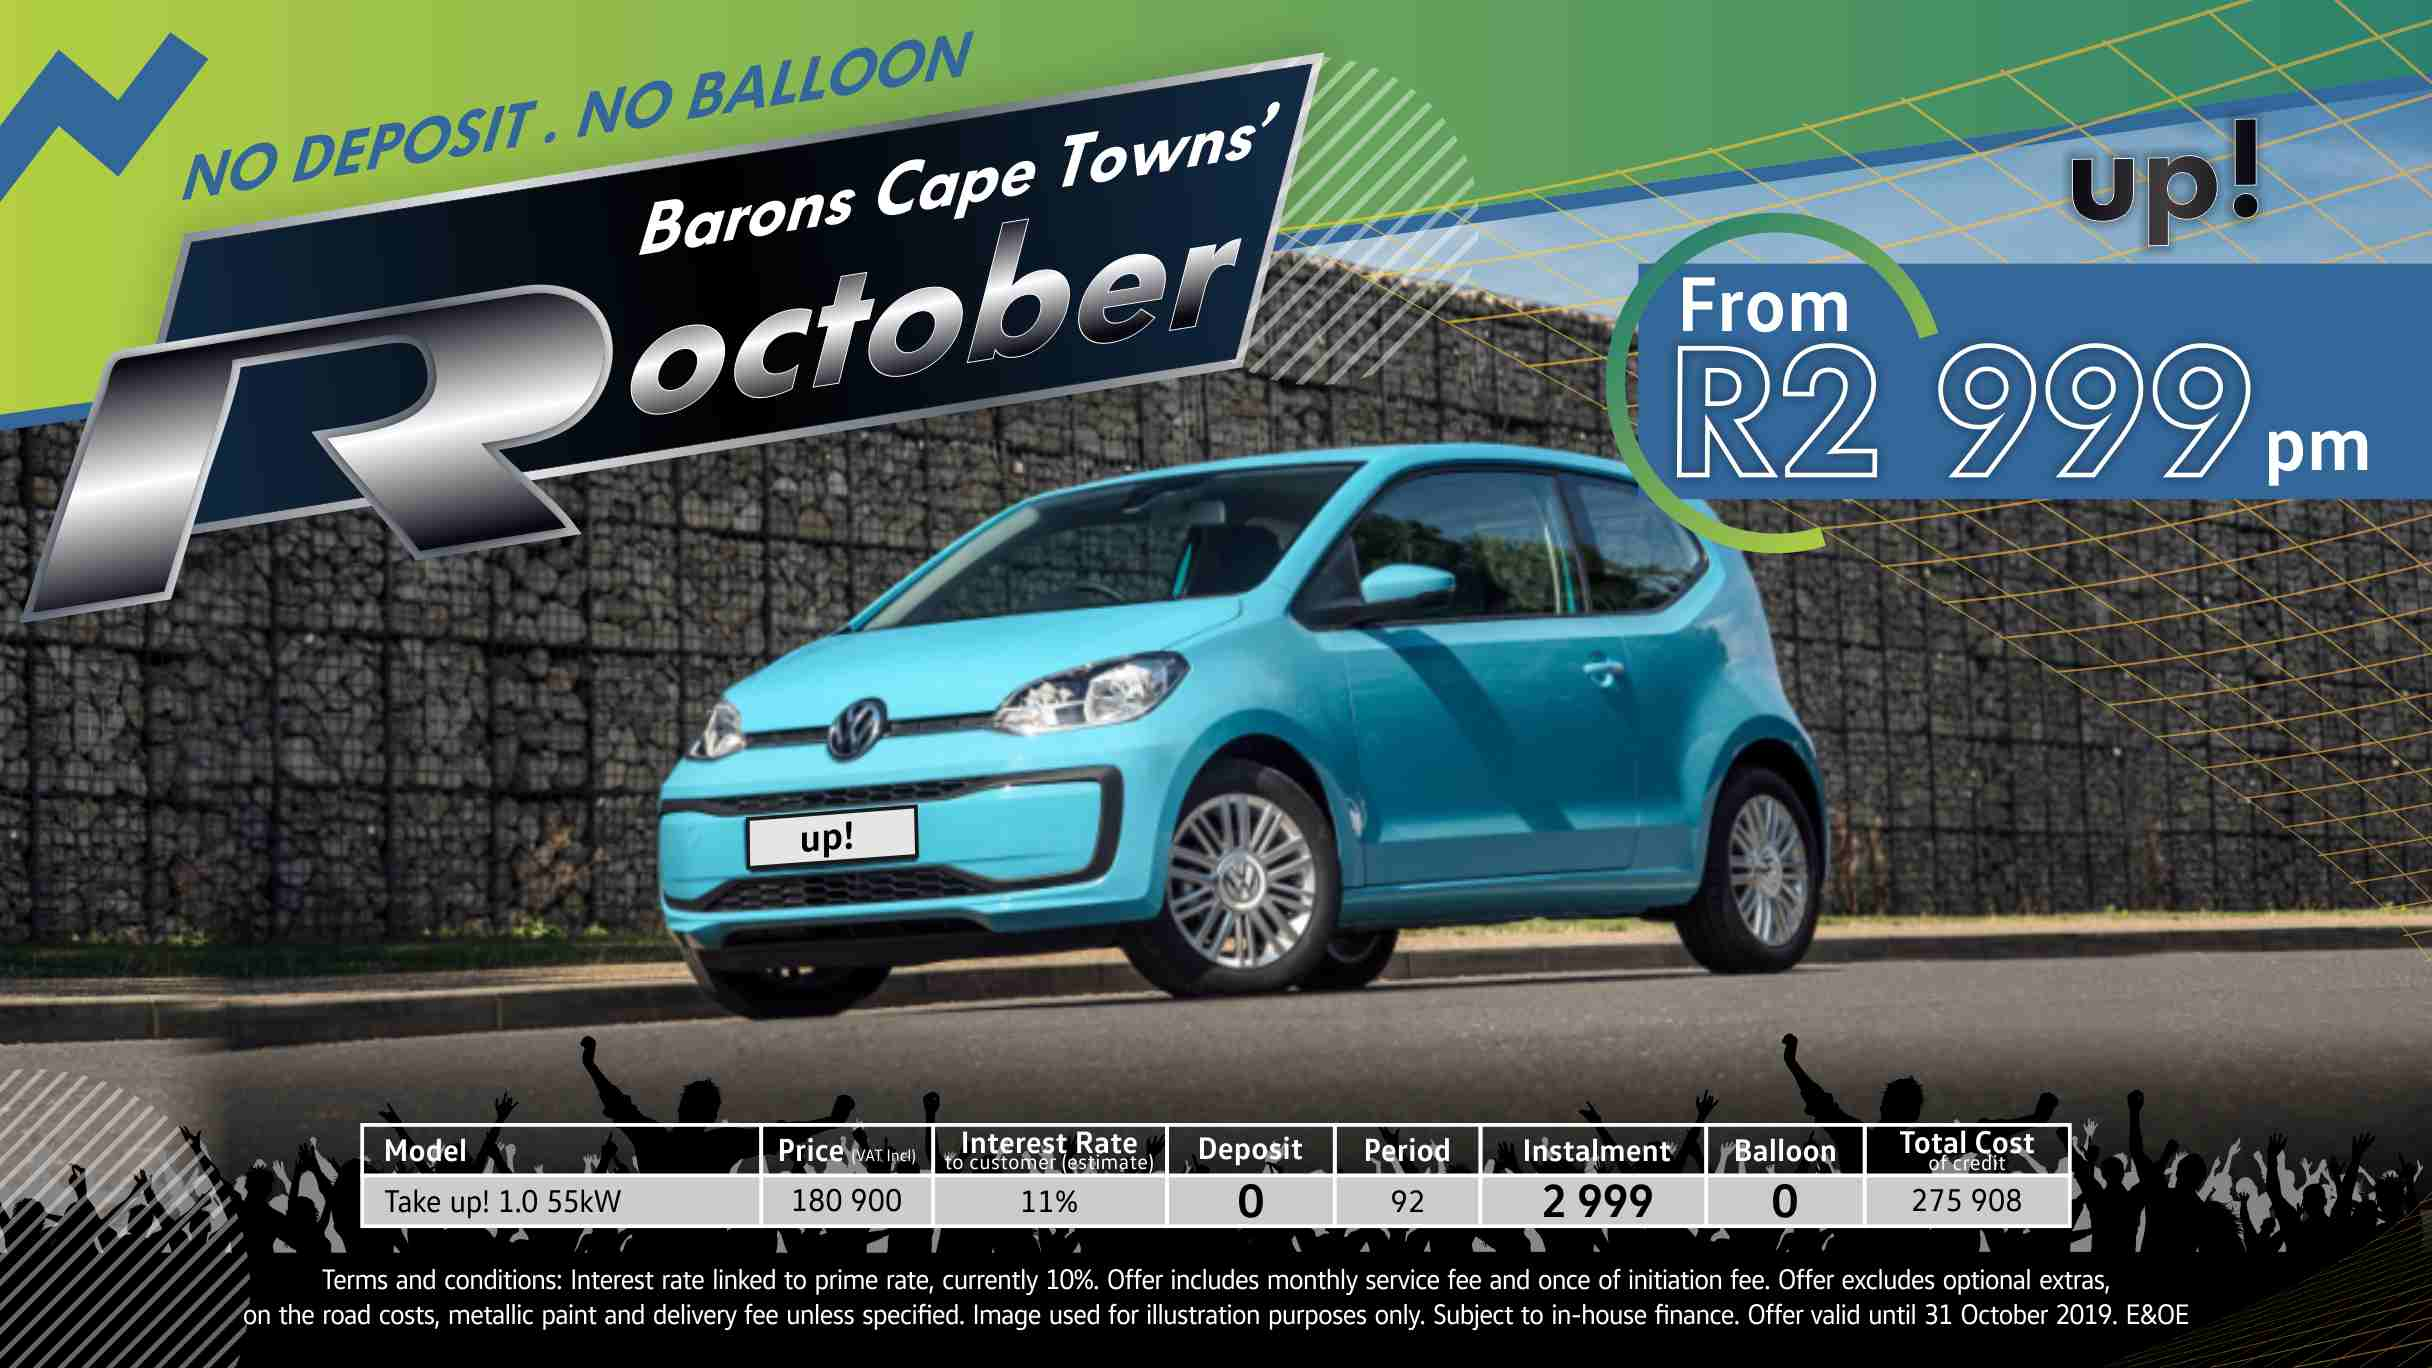 Barons Cape Town VW up Rocktober special